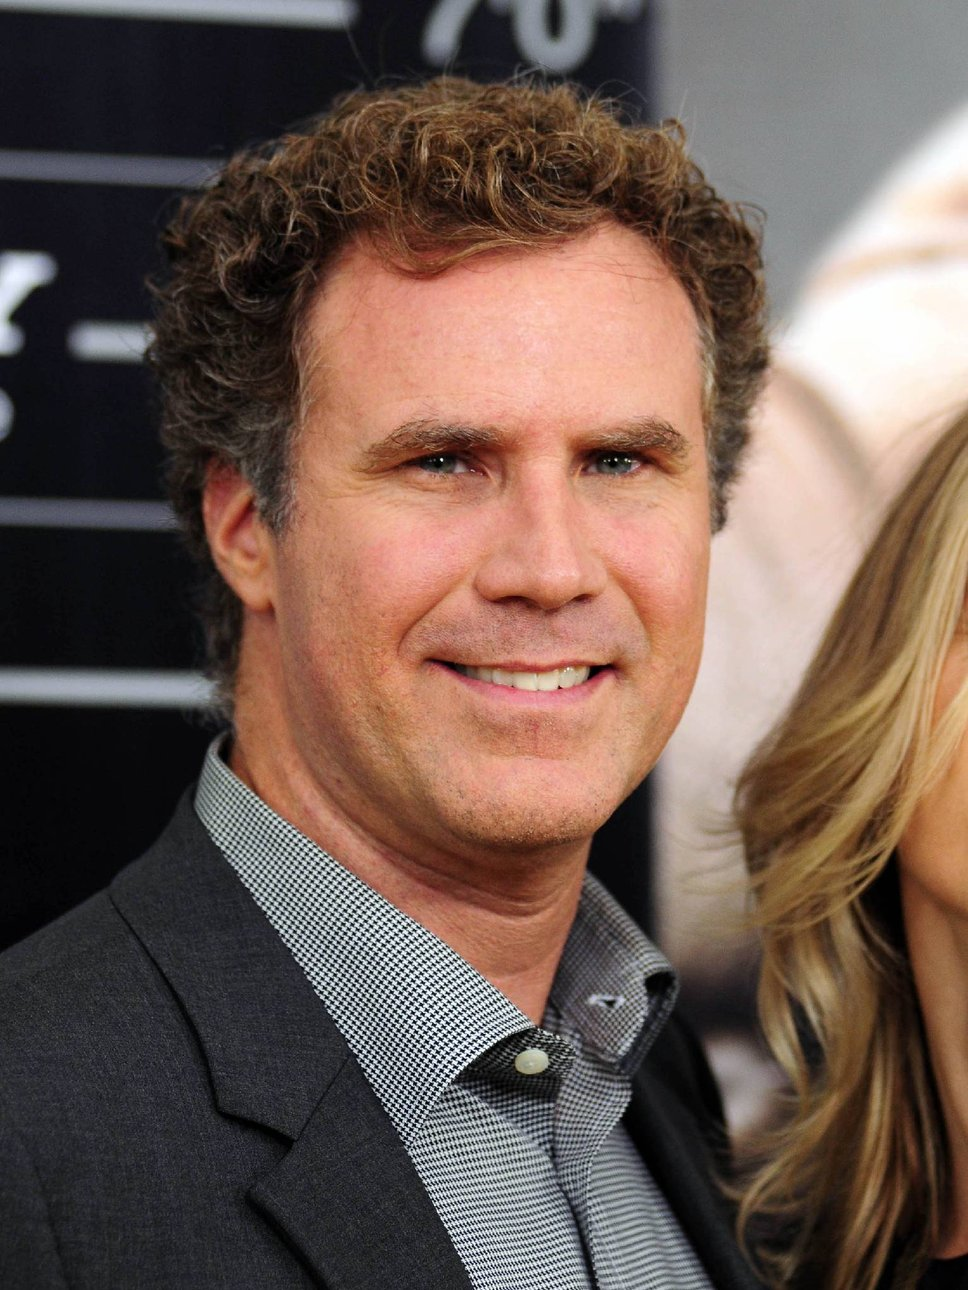 will_Will Ferrell - His Religion, Hobbies, and Political Views